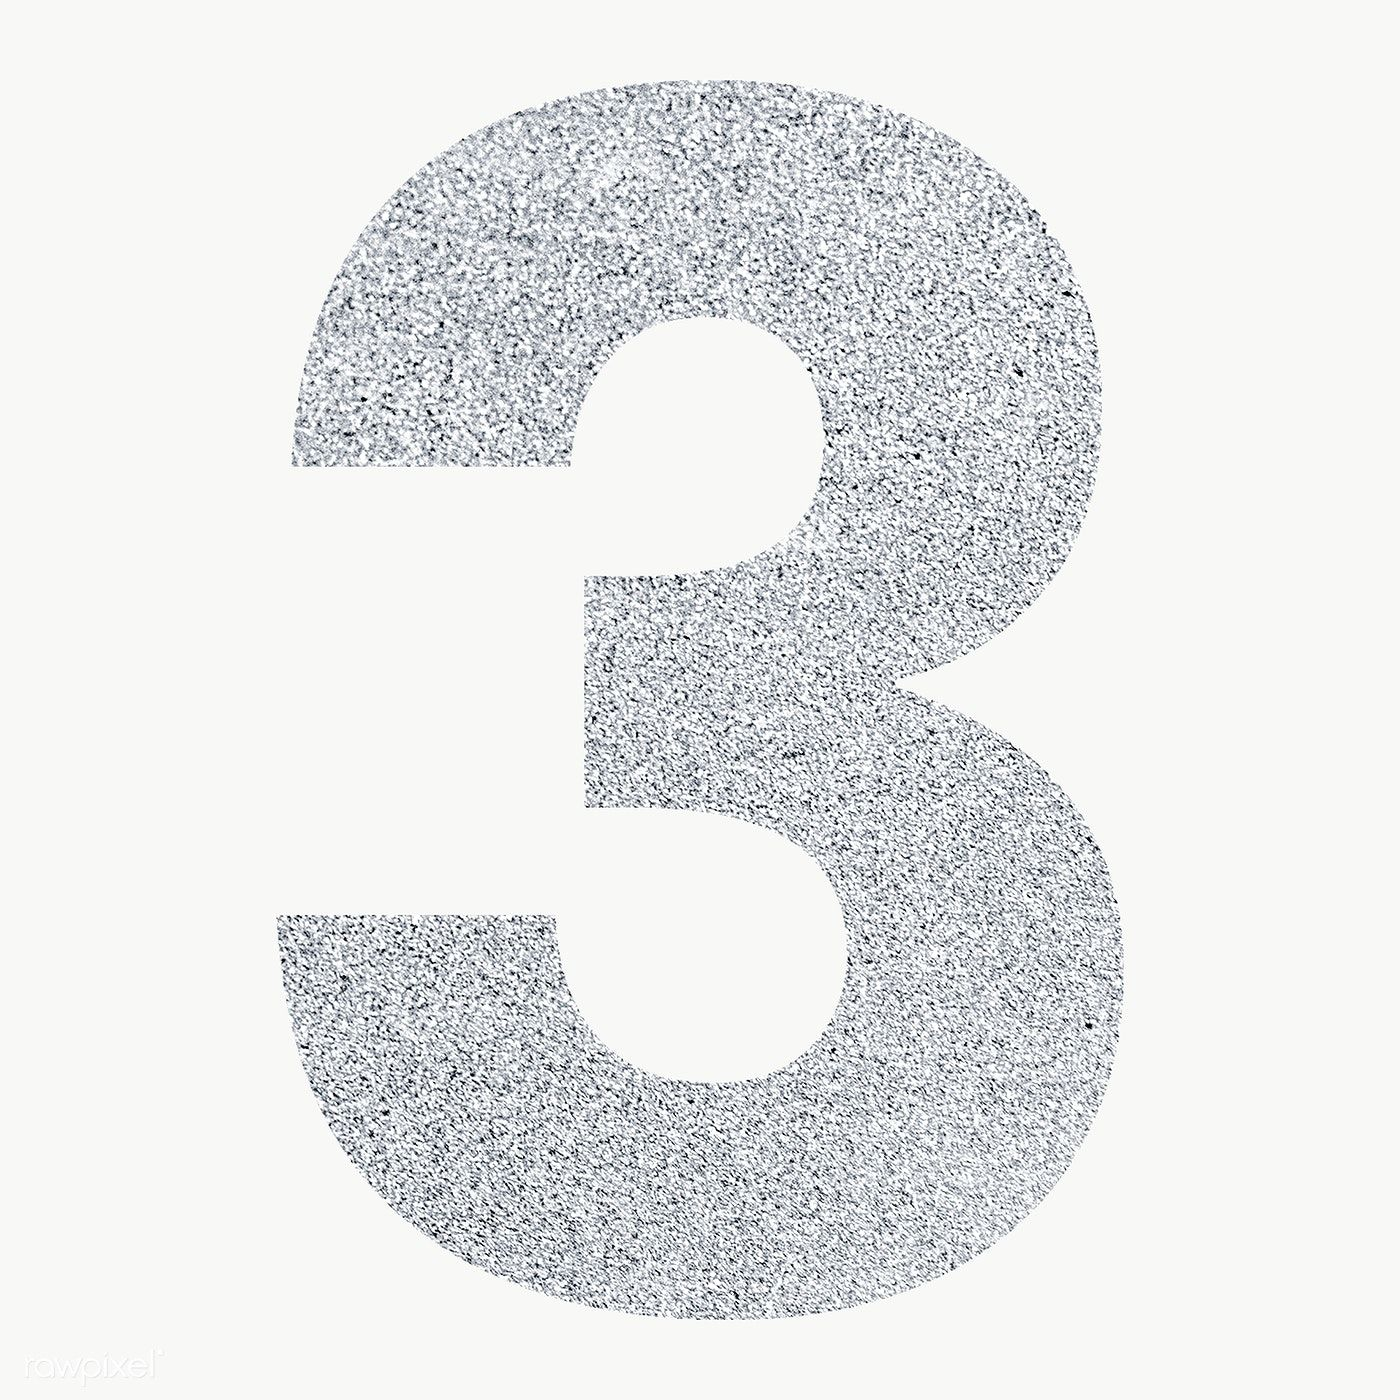 Glitter Metallic Number 3 Typography Transparent Png Free Image By Rawpixel Com Ningzk V In 2020 Typography Glitter Balloon Diy